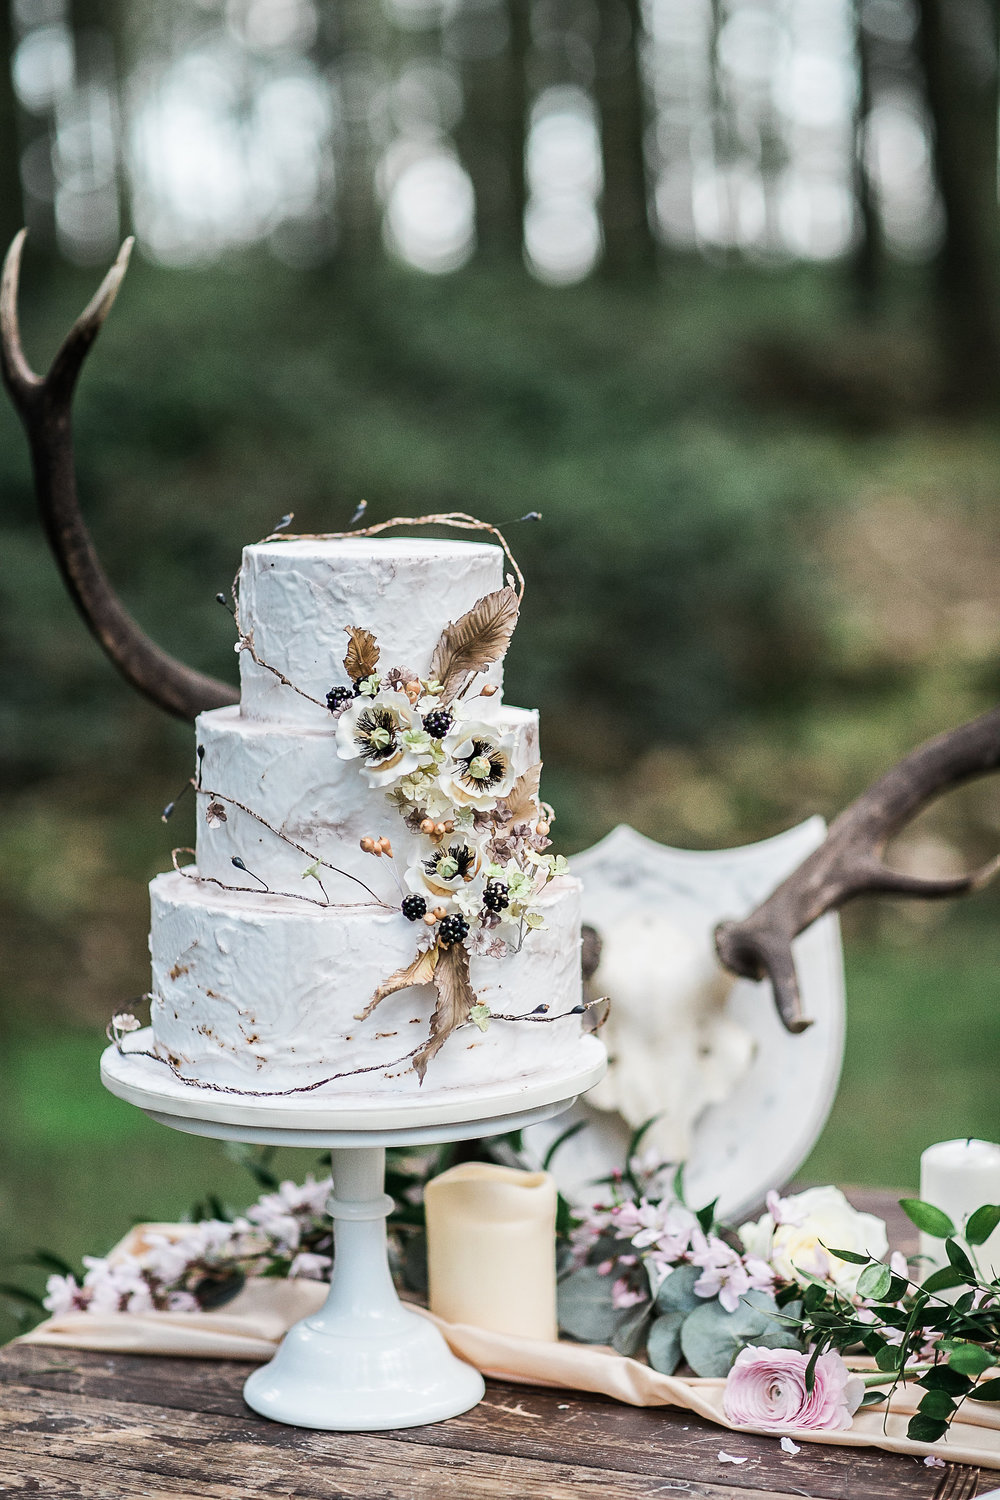 Photo credit SamieleePhotography/ Styled shoot NatashaSpencerEvents Three Tier white royal icing finished cake, with handcrafted winter berries, poppies, feathers and vines.  Serves 80 £420